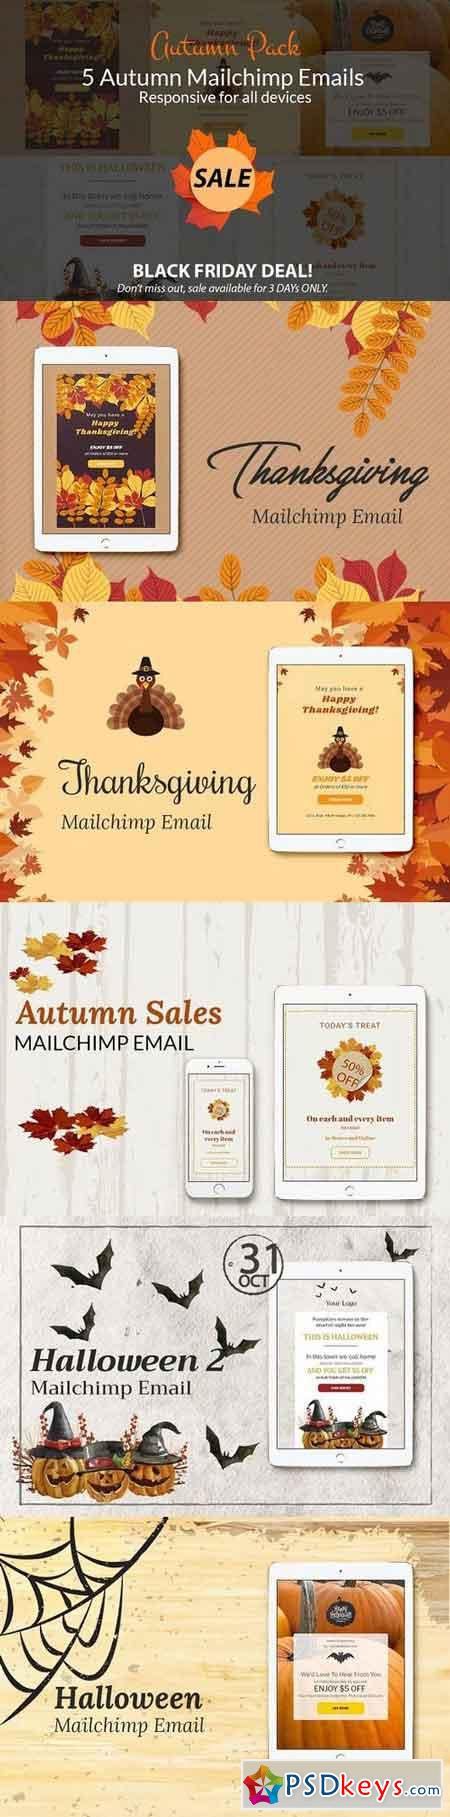 Autumn Sales (mailchimp emails) 1070716